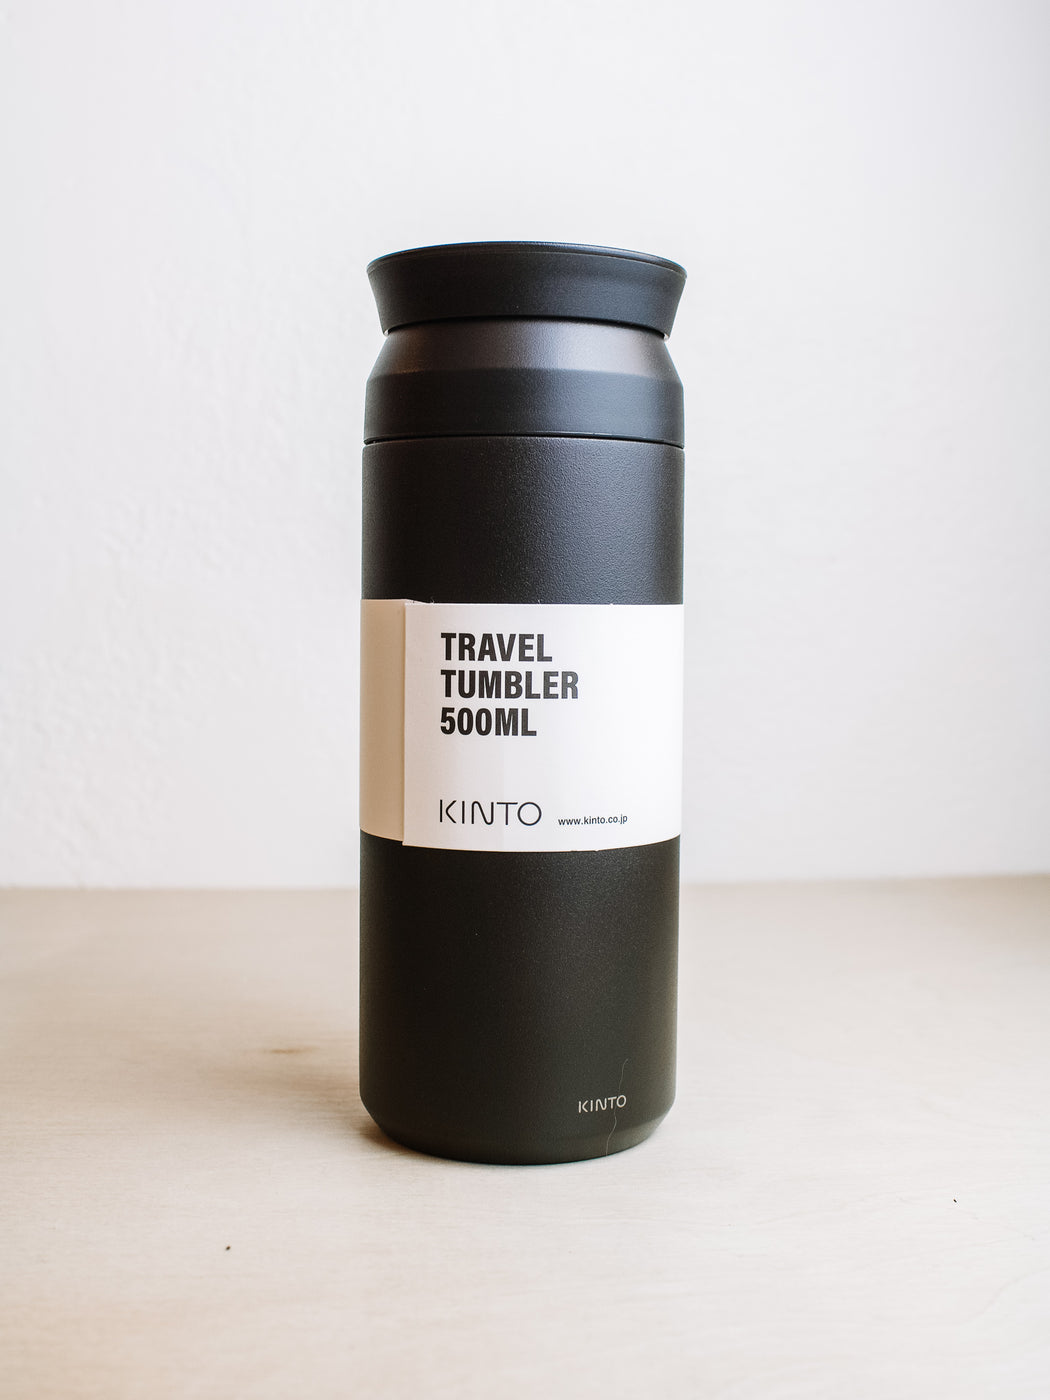 Kinto- Travel Tumbler 500ml